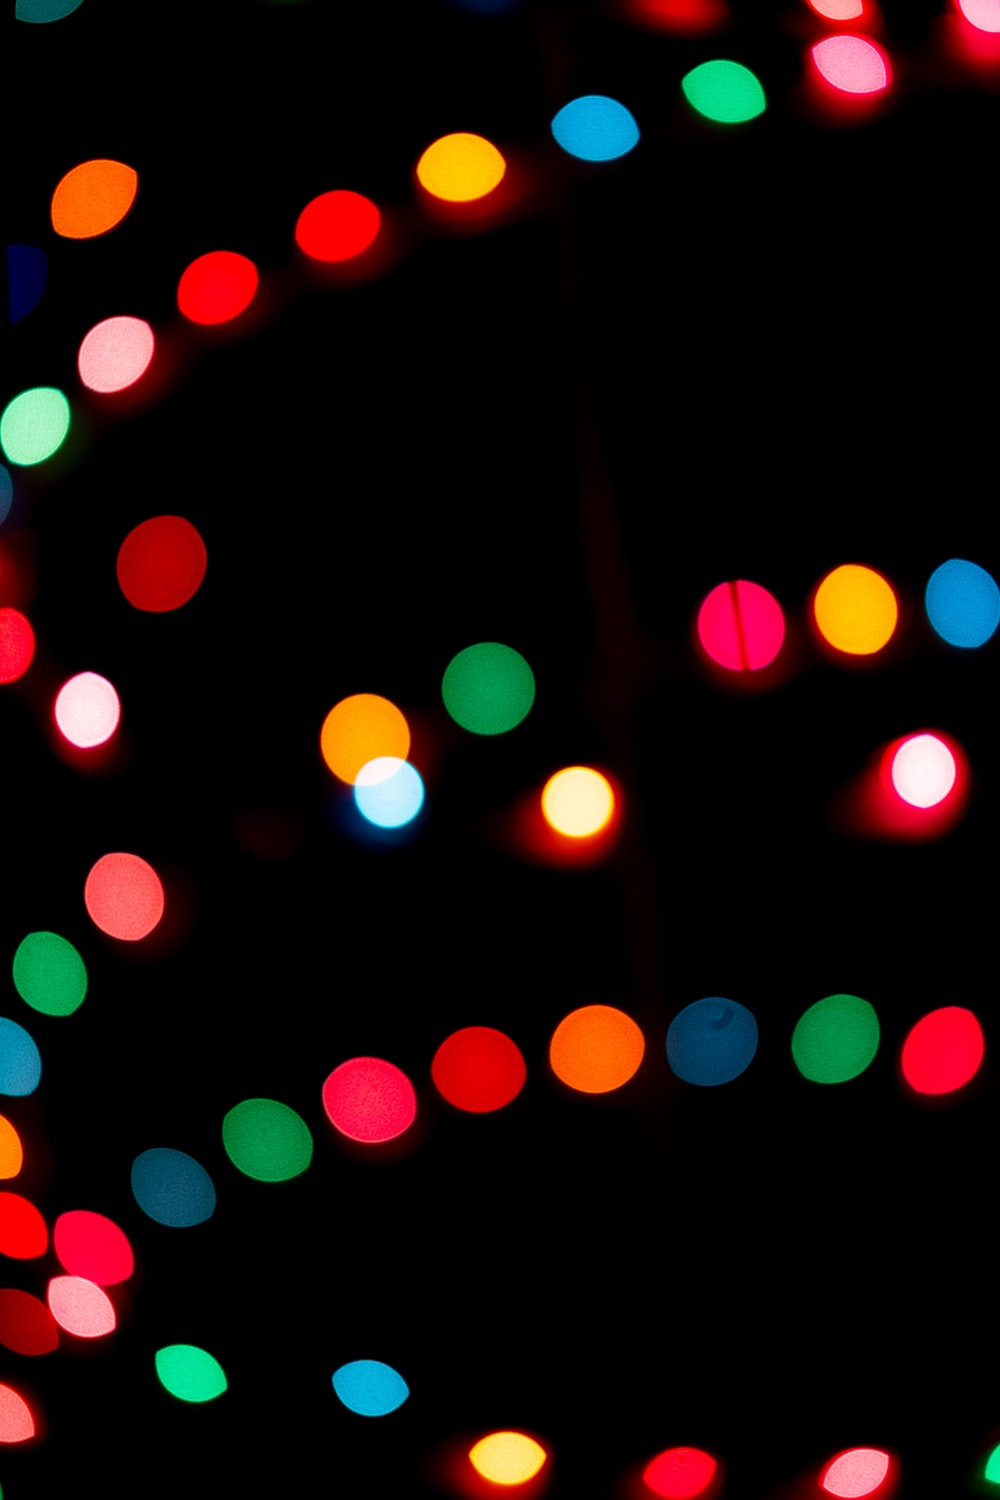 red green and blue lights